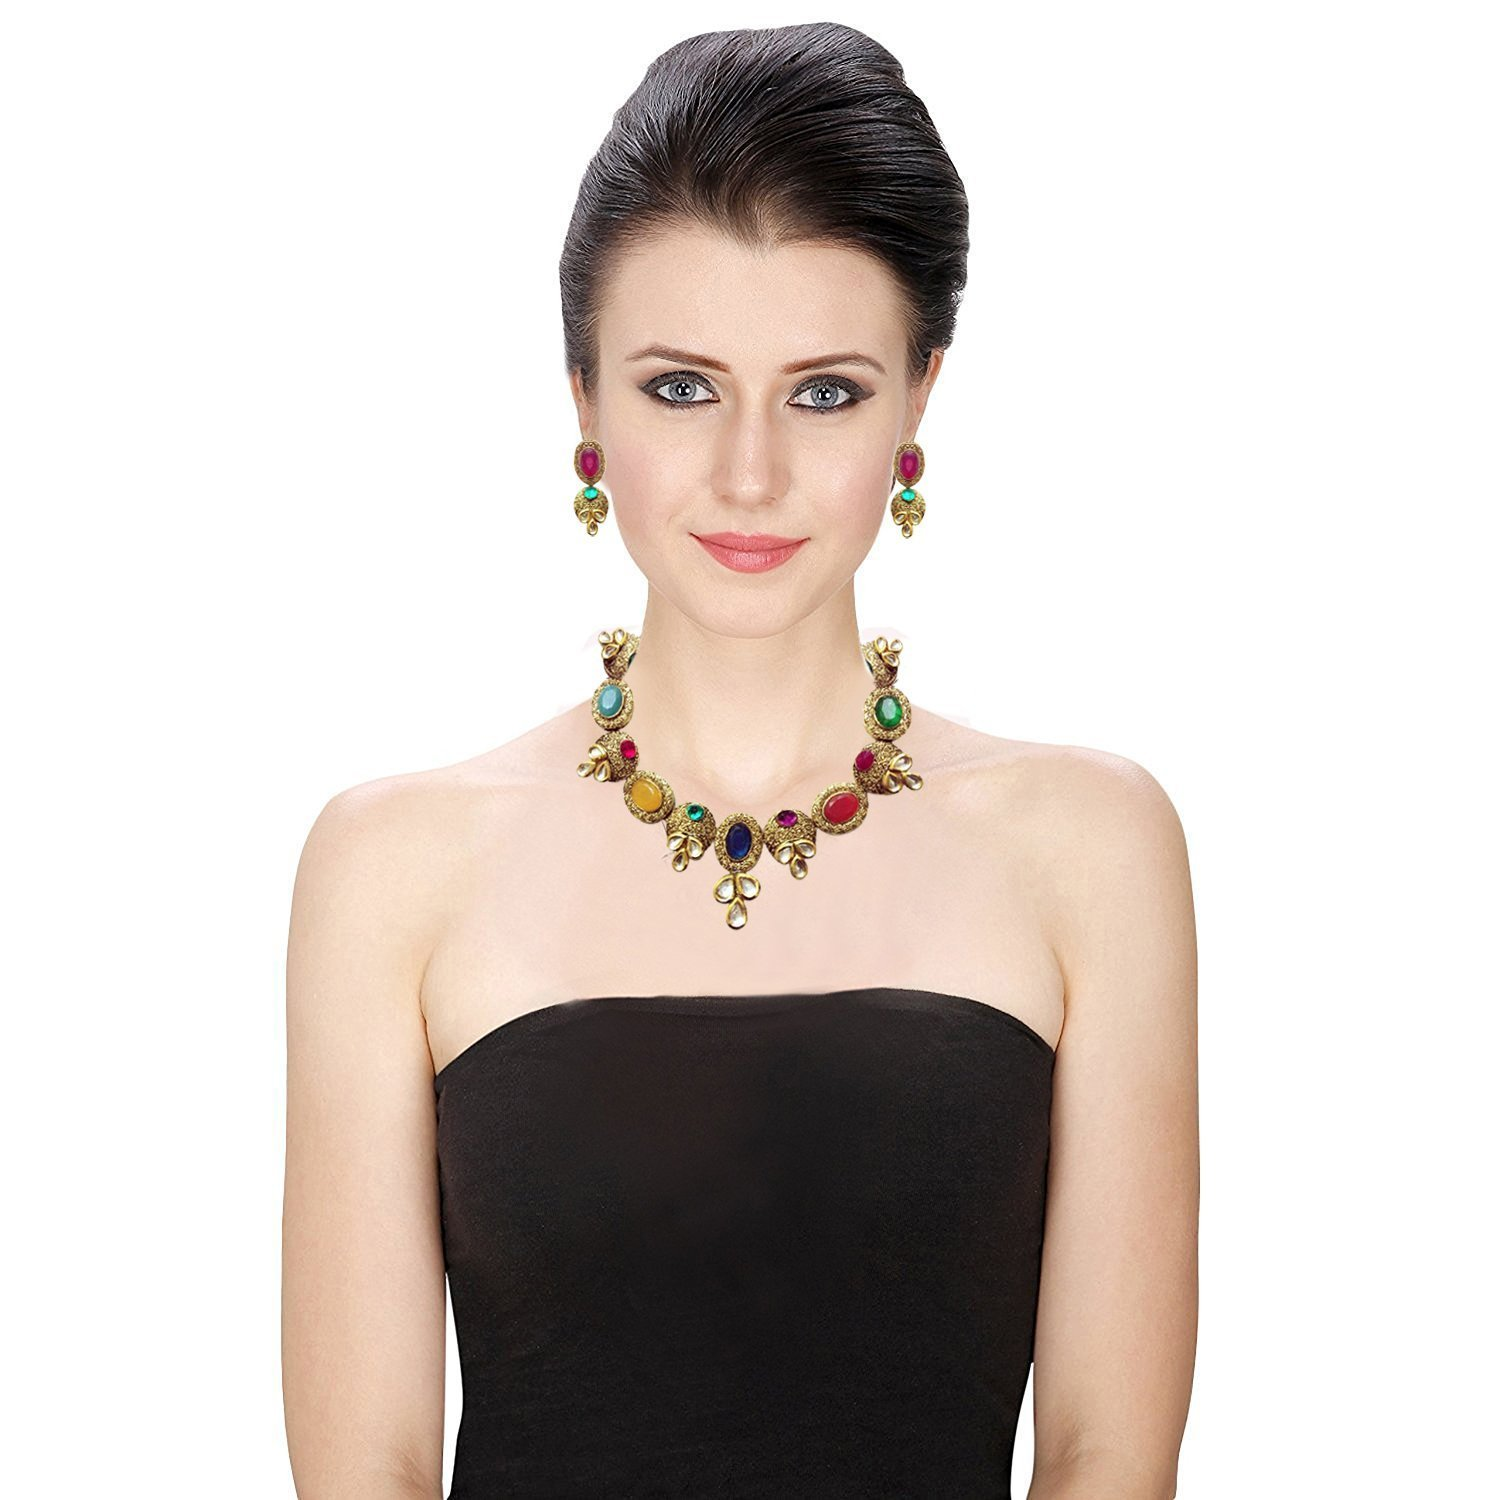 Diyofa Jewellery Bollywood Ethnic Gold Plated Semi Precious Kundan and Stone Antique Design Indian Necklace Set with Earrings for Women